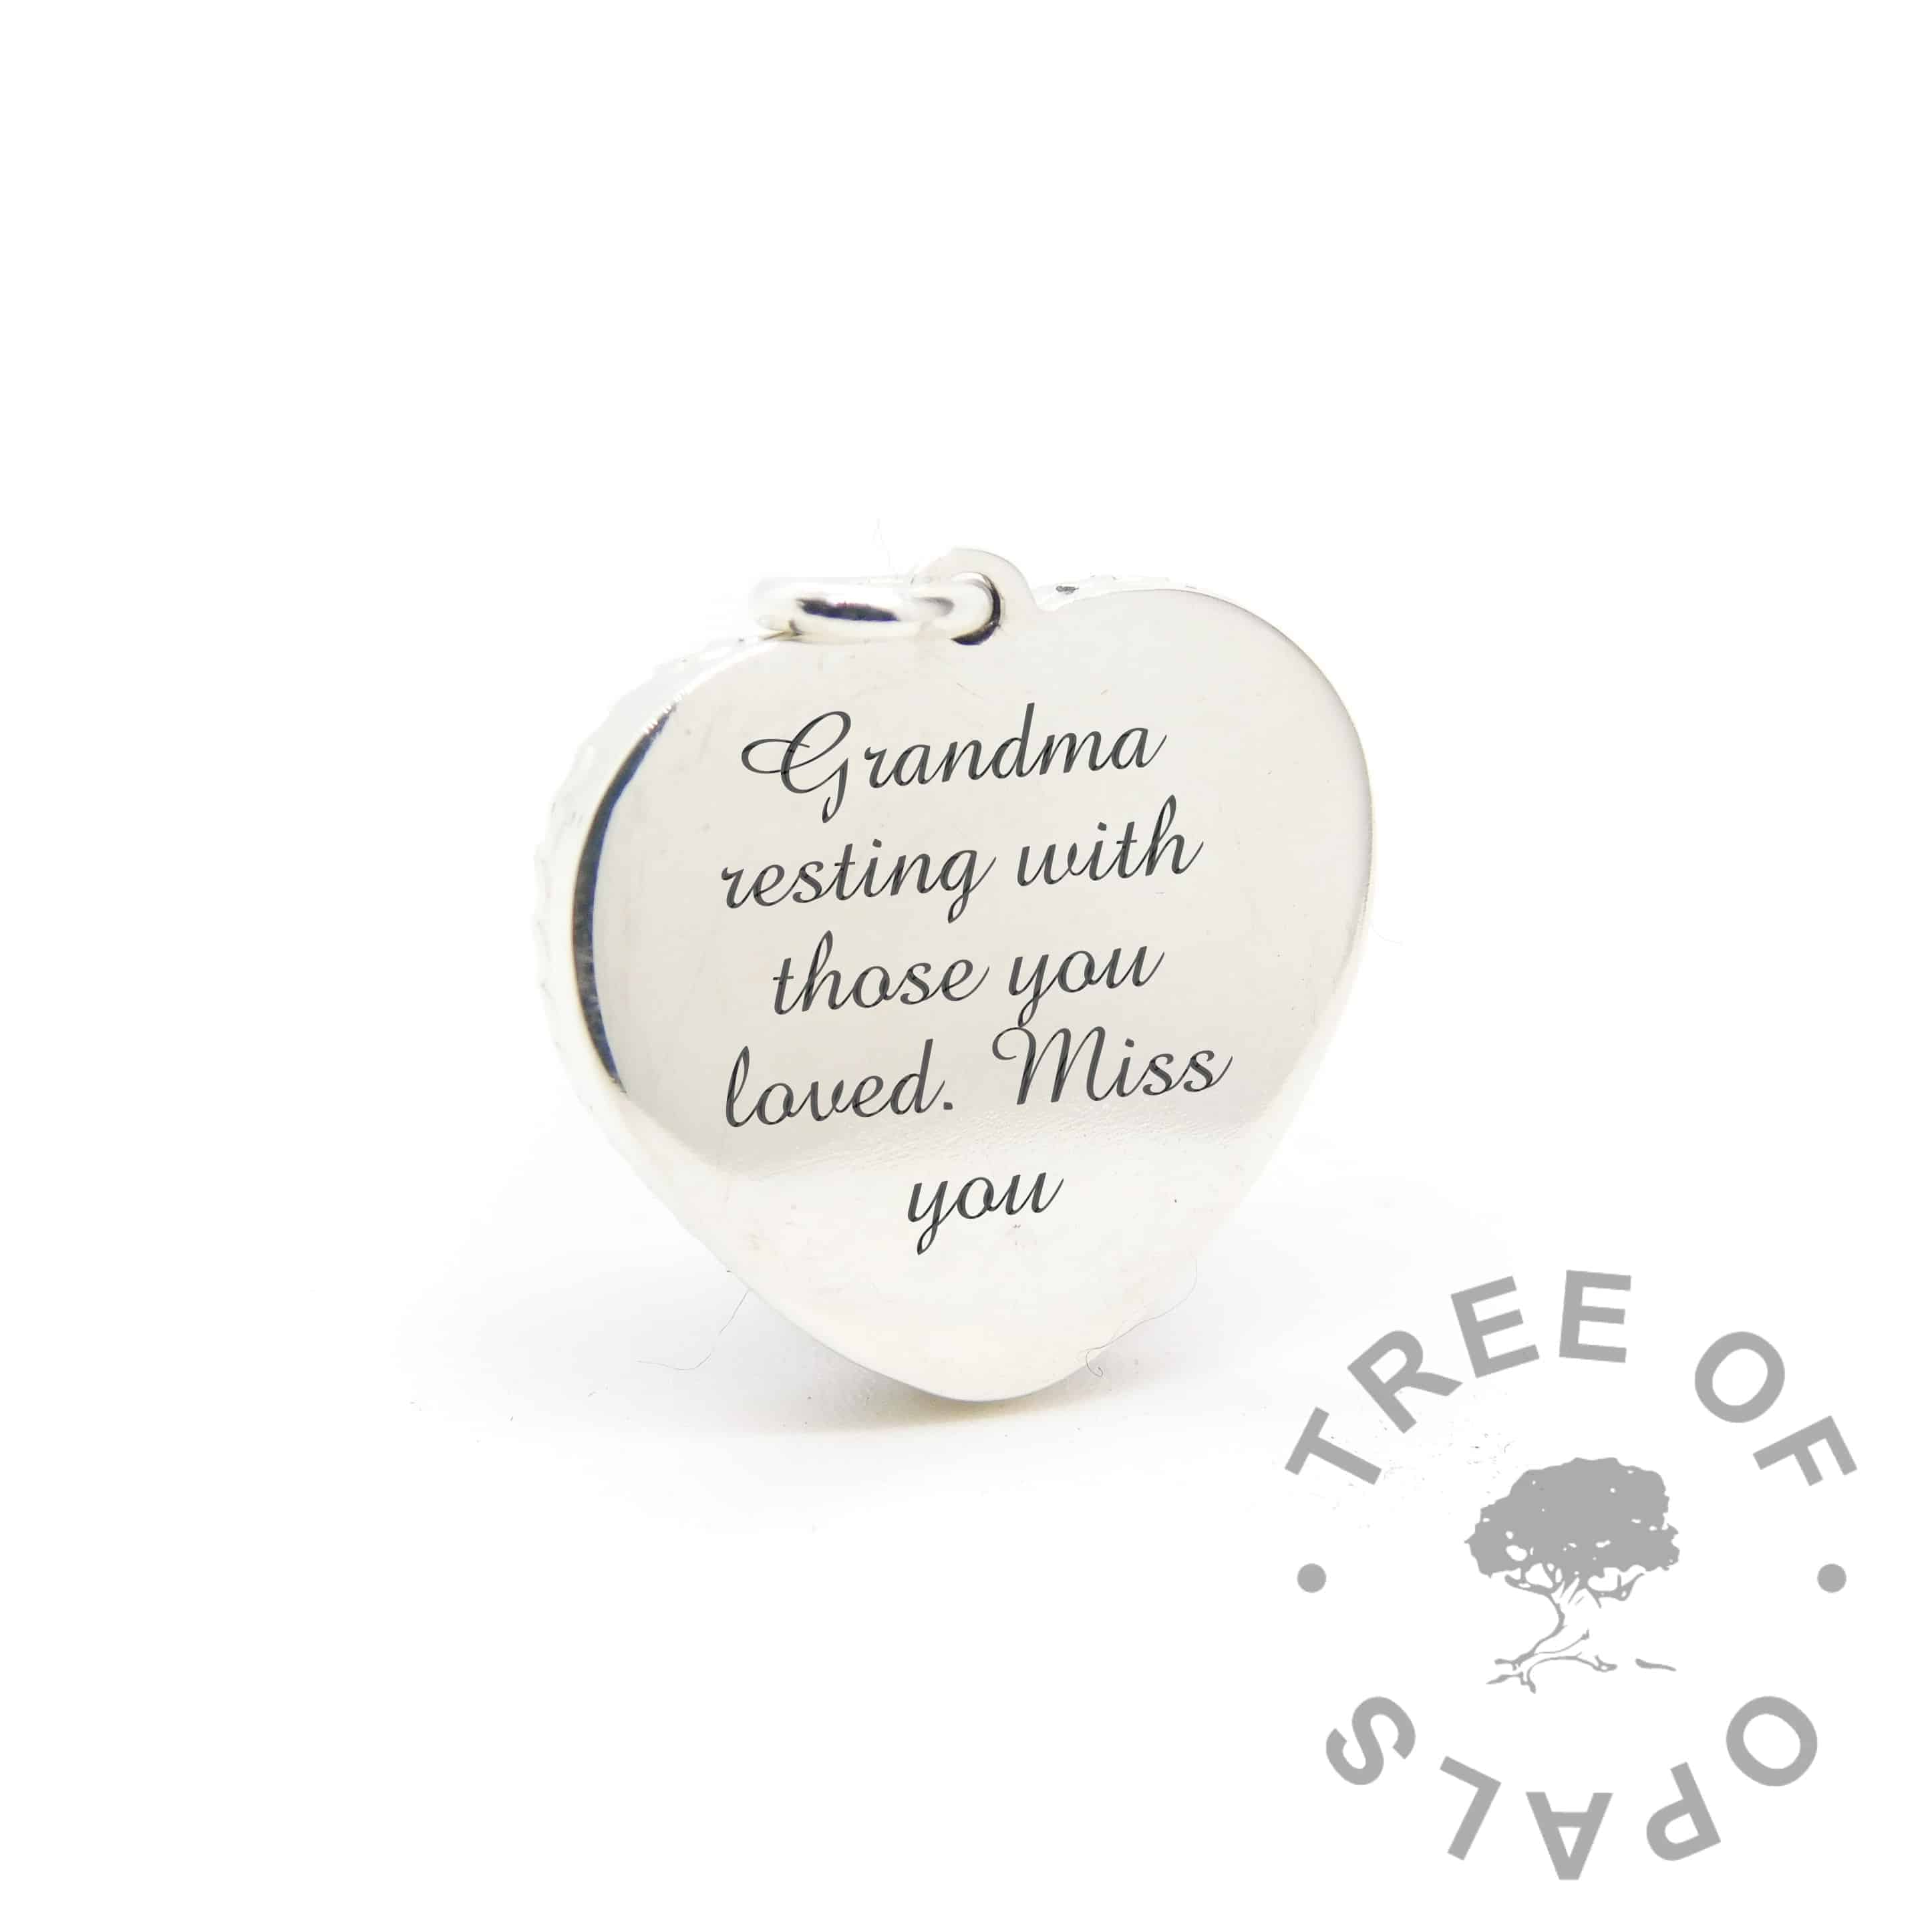 New style heart necklace setting back, with Amazone BT engraving mockup (shown without necklace chain)